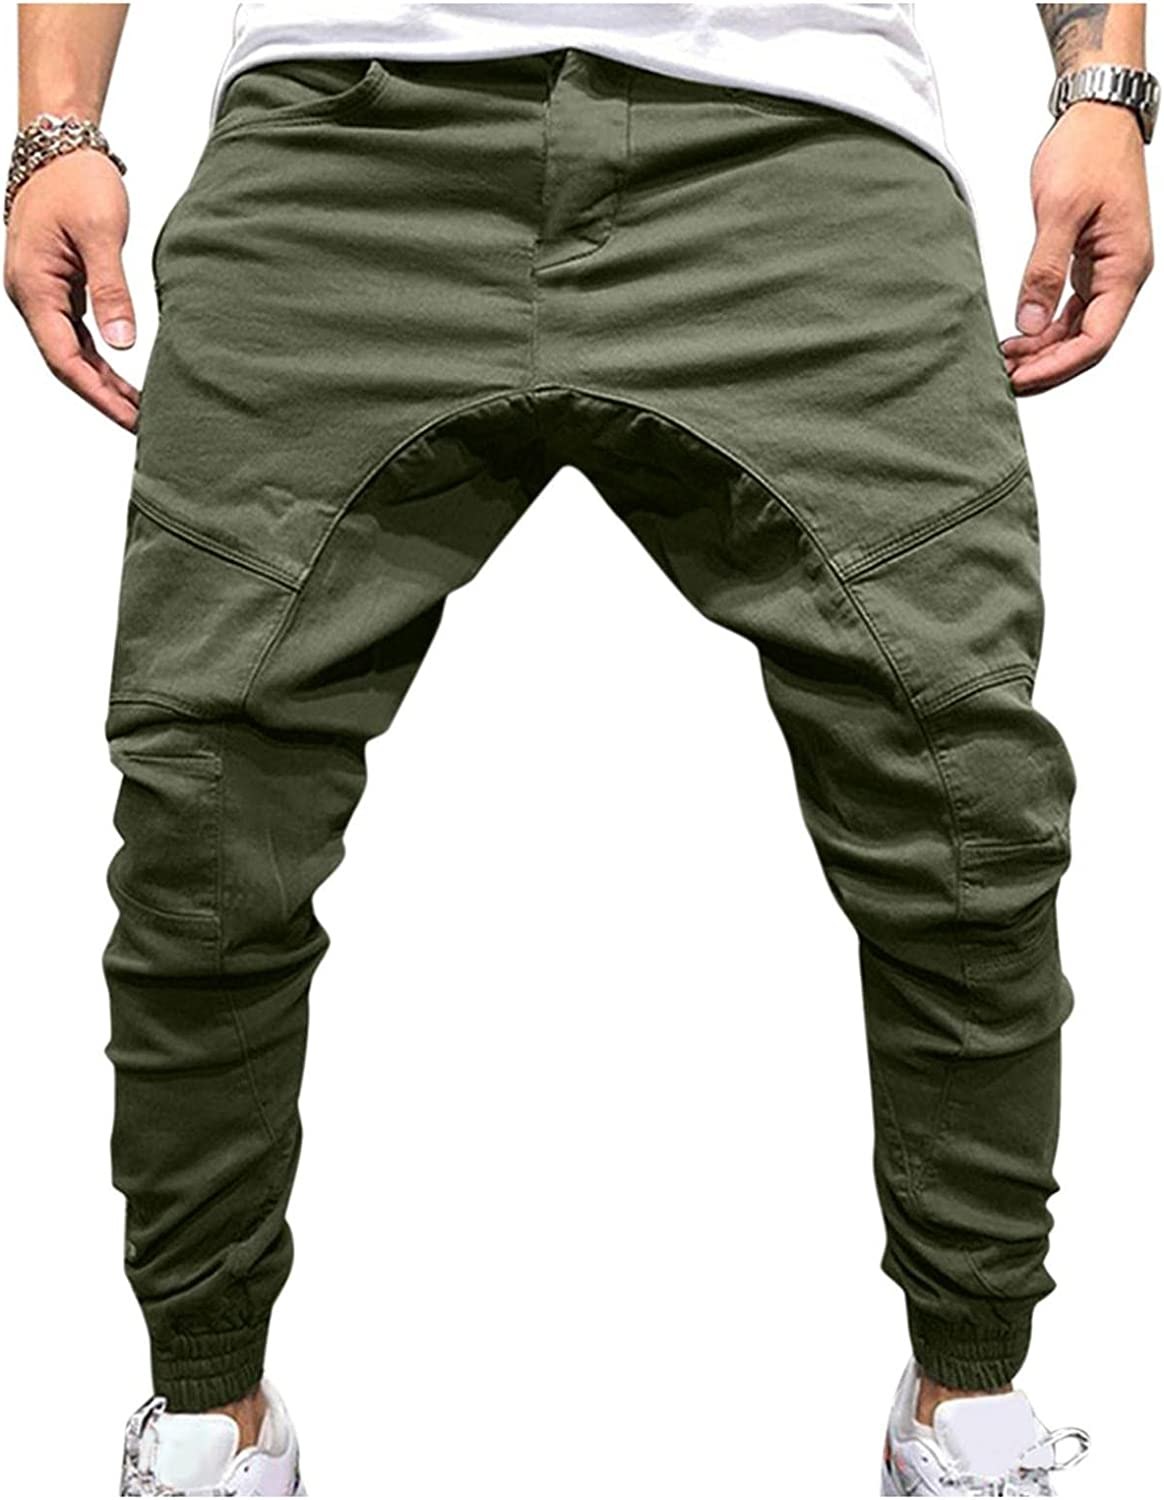 WOSHUAI Men's Big & Tall Sweatpants Casual Solid Fitted Jogging Running Athletic Pants Trendy Zipper Pockets Trousers